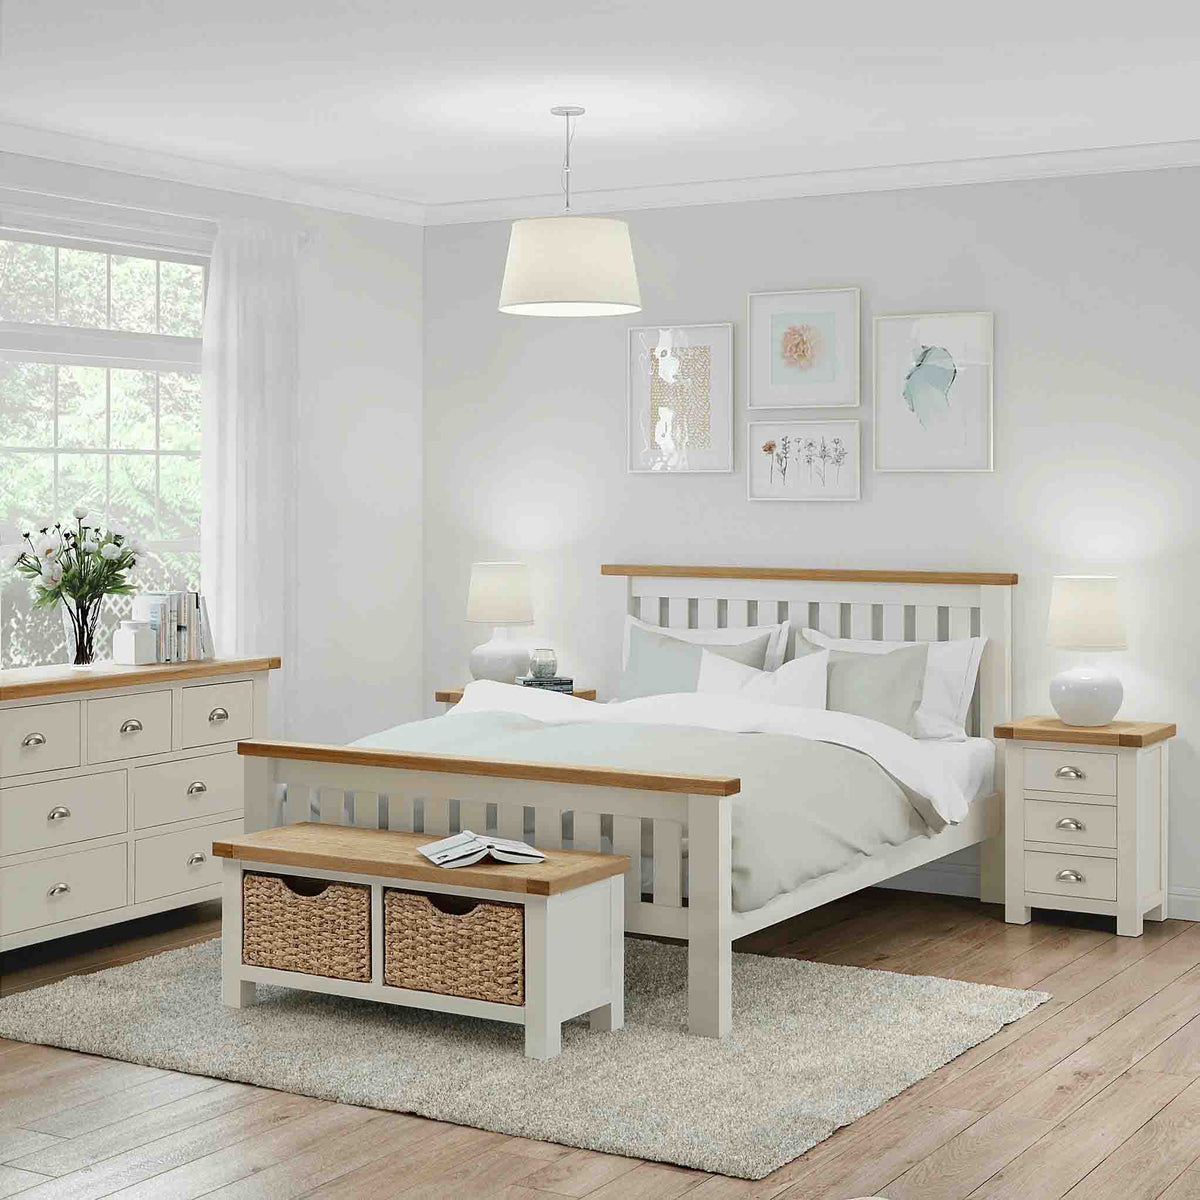 Decorative Bedroom view of The Daymer Cream Wooden Double Bed Frame